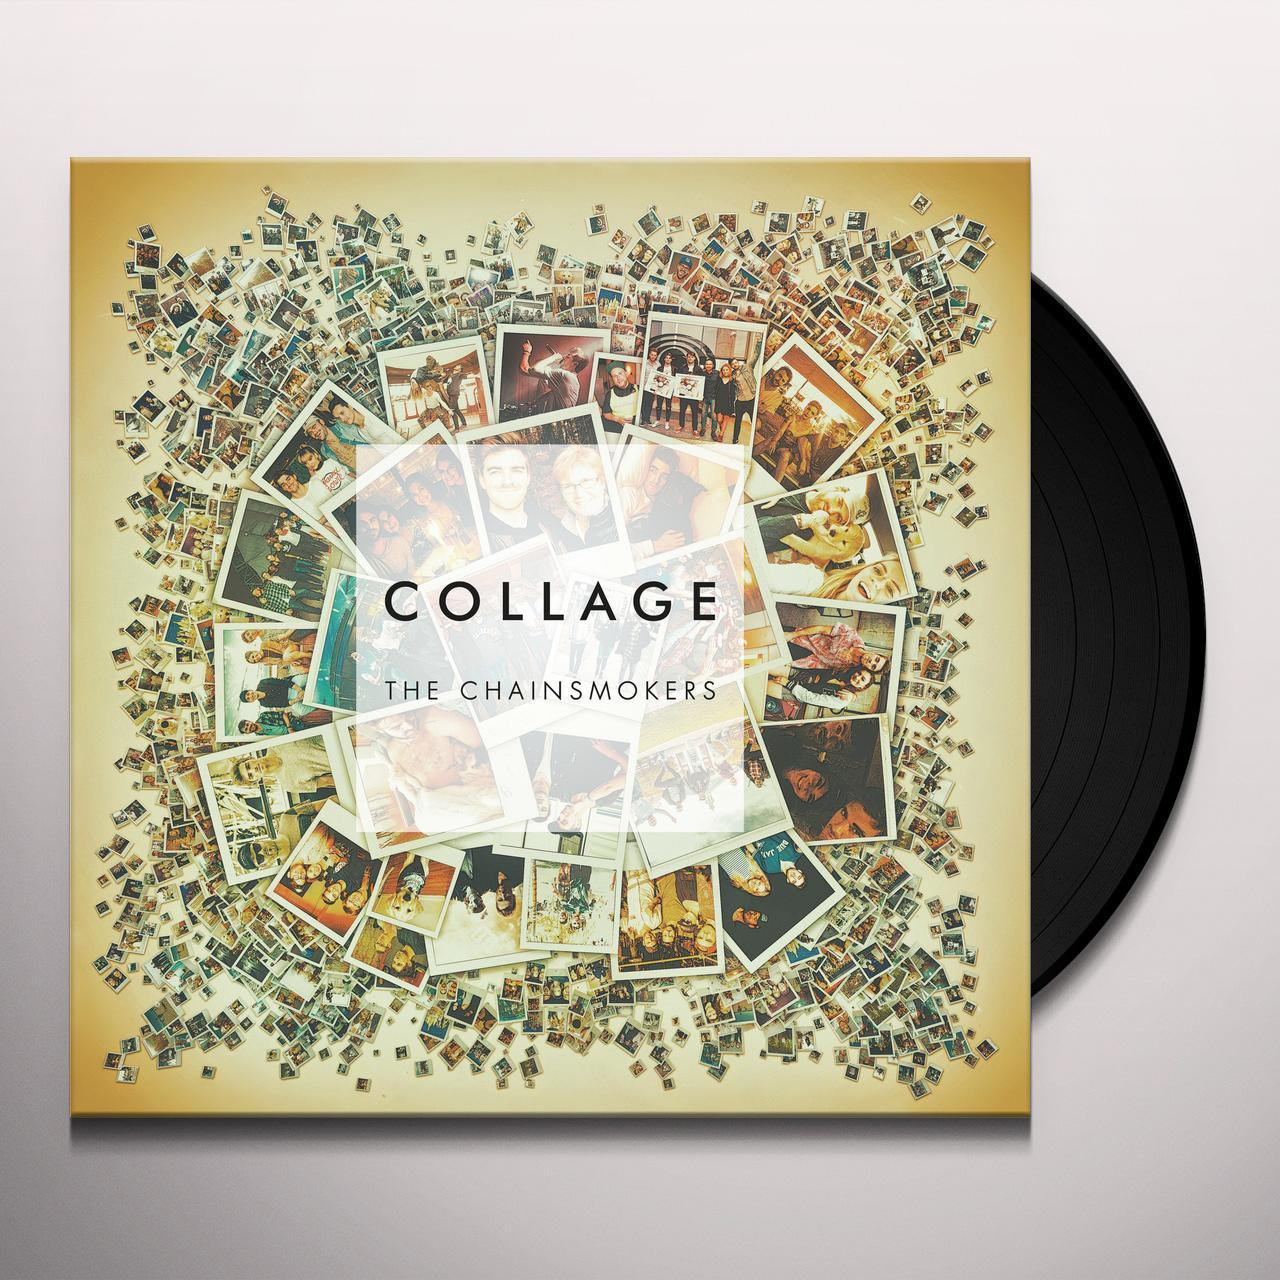 The Chainsmokers Collage Vinyl Record